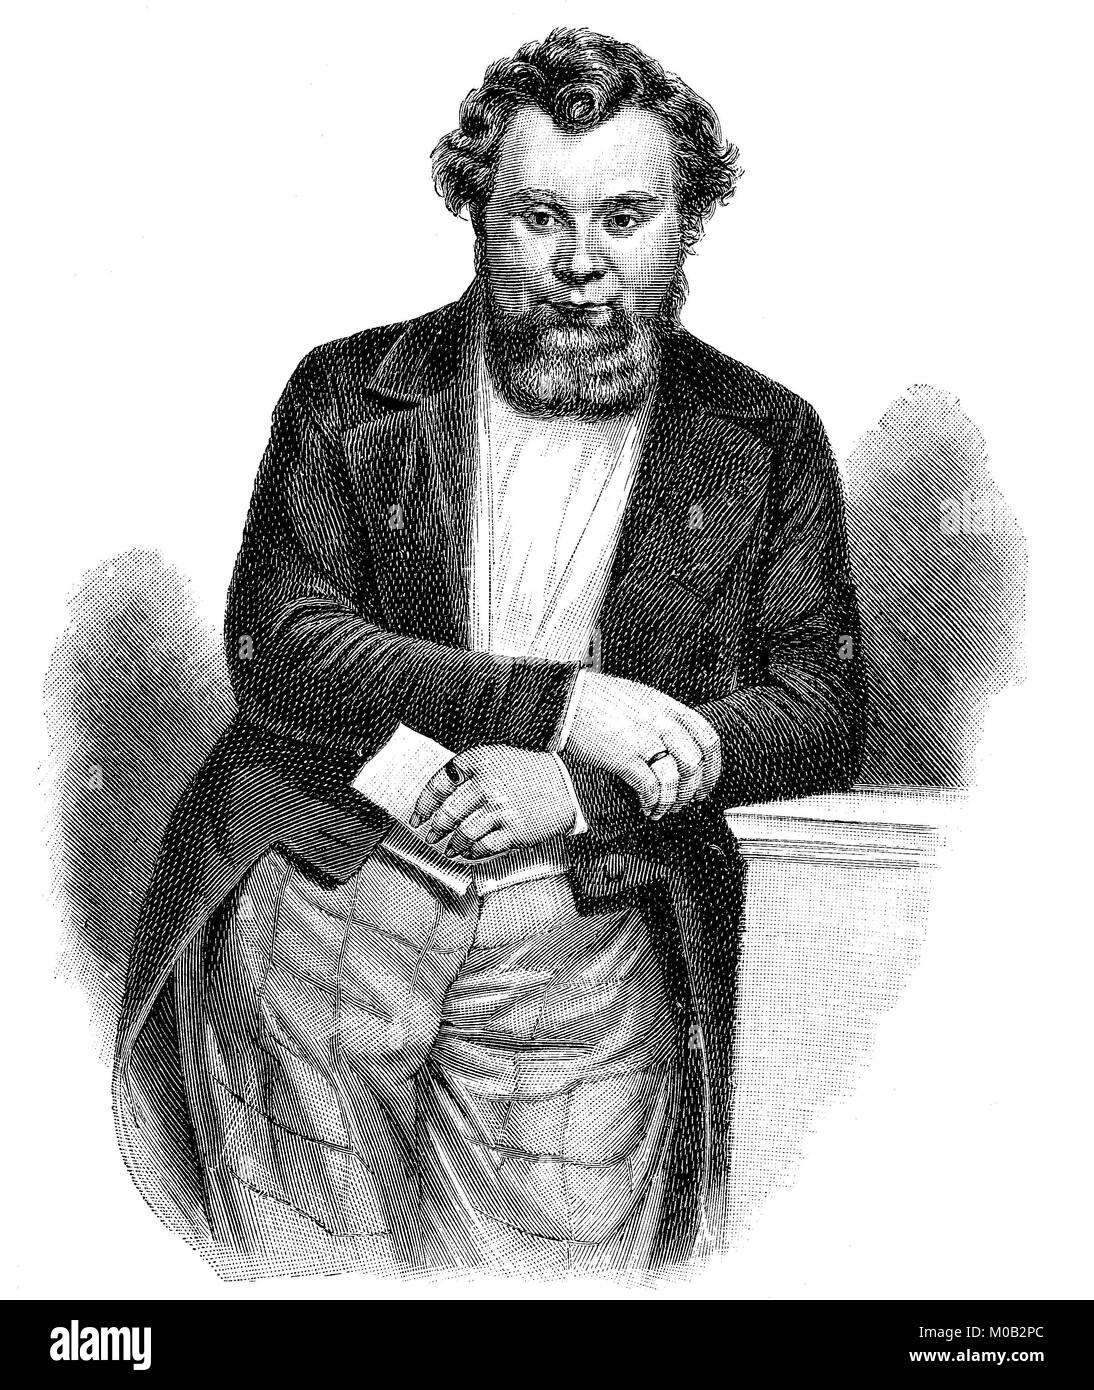 Robert Blum, 10 November 1807 - 9 November 1848, was a German politician, publicist, publisher and poet in the years - Stock Image